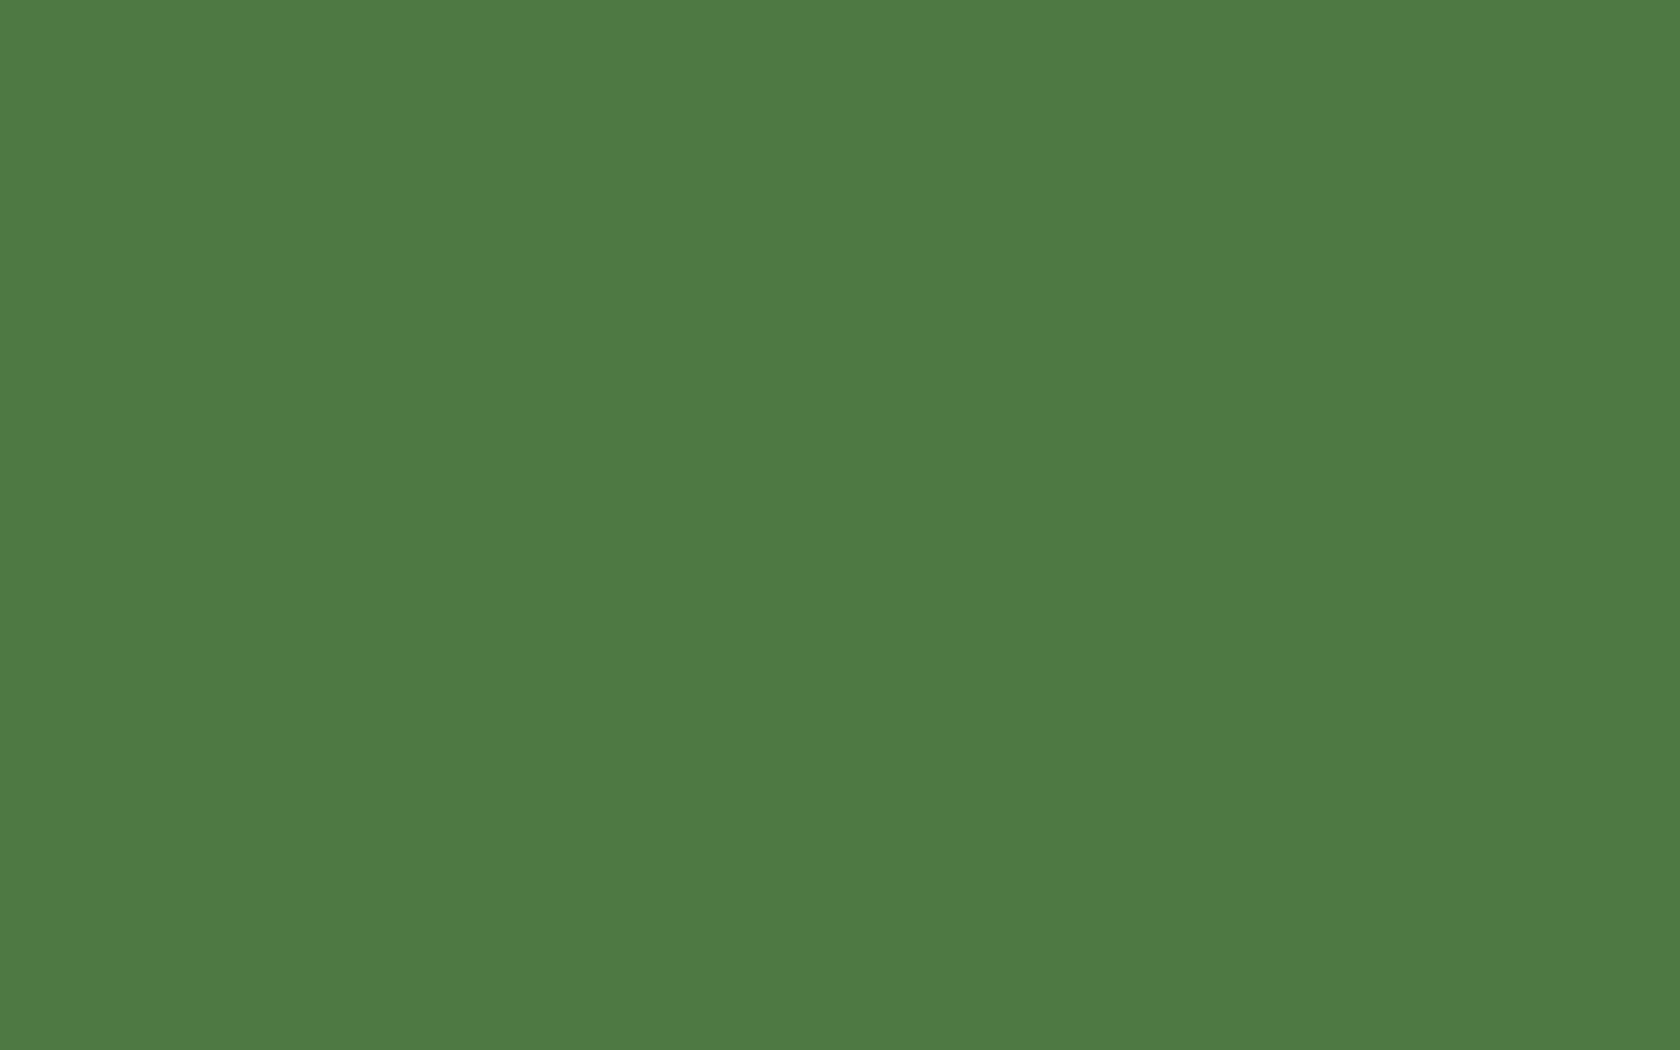 1680x1050 Fern Green Solid Color Background